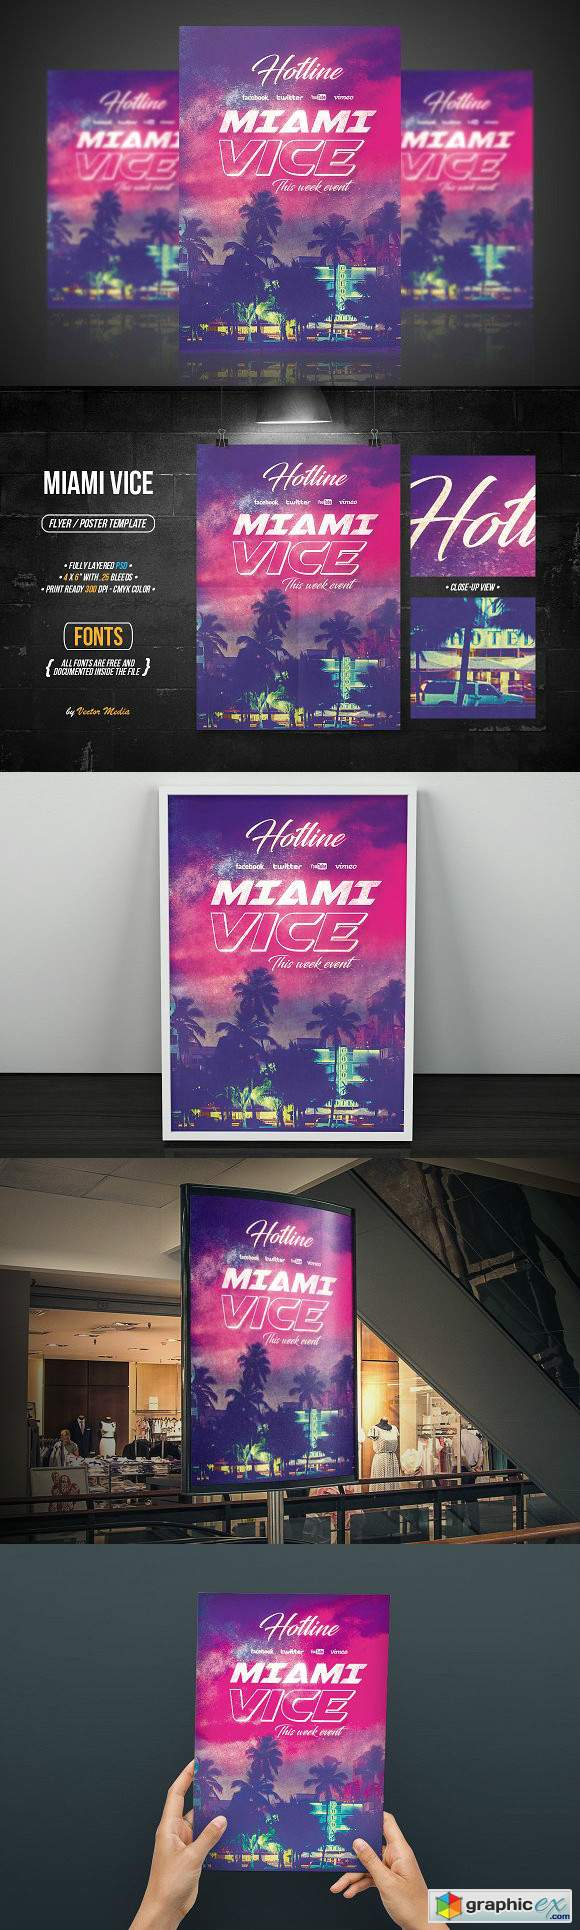 Miami Vice - Flyer Poster